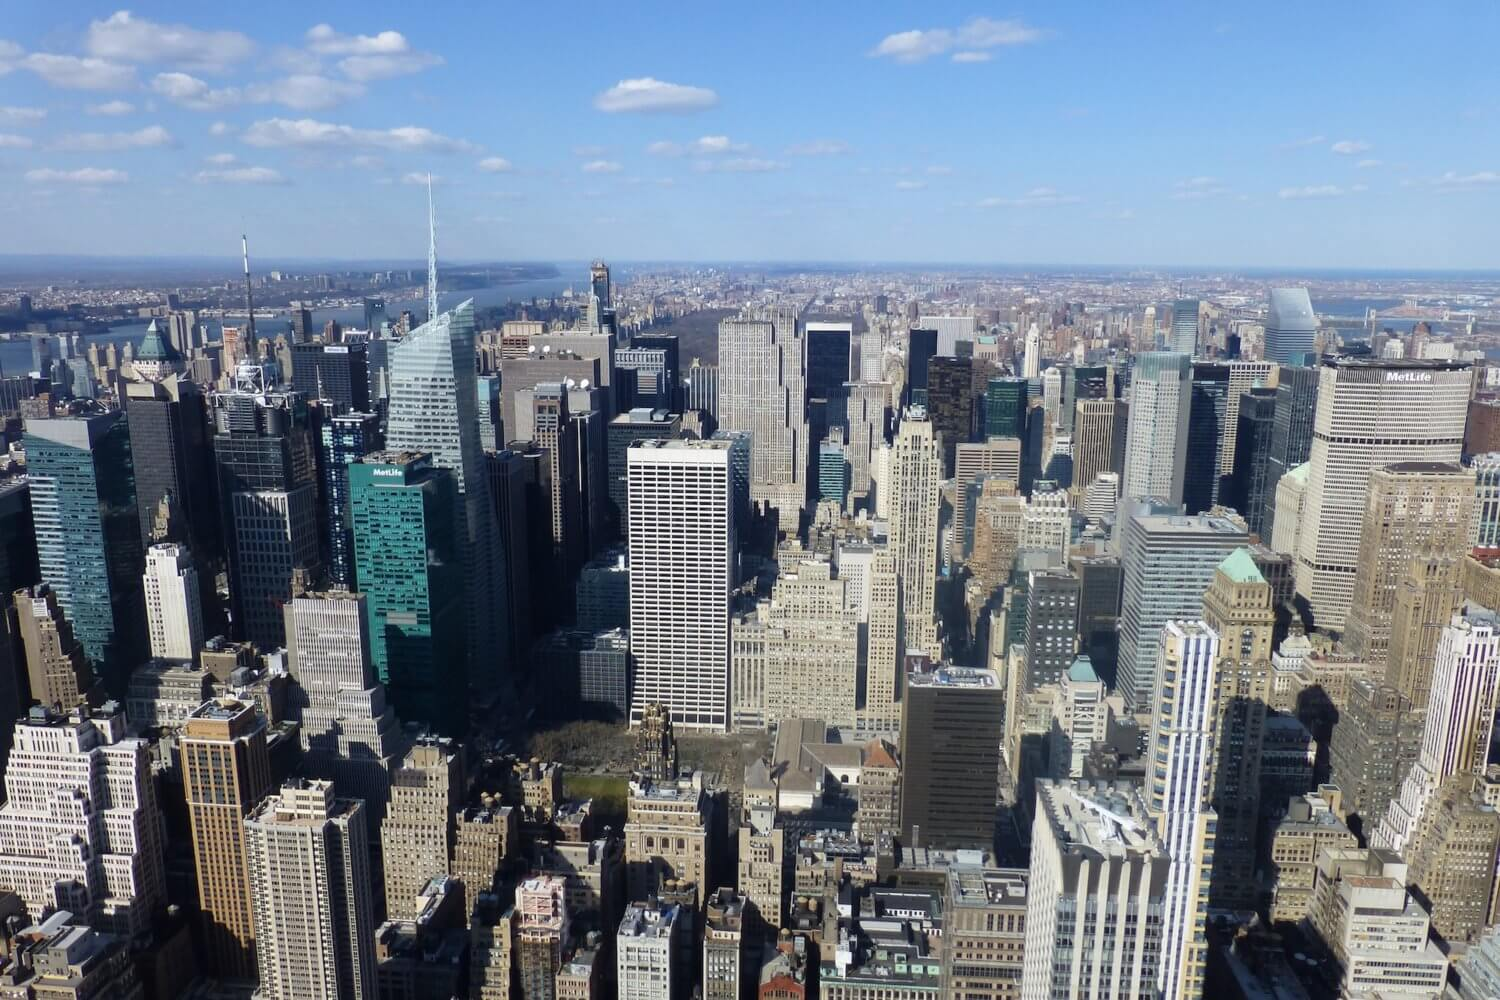 Empire State building view, Empire State observatory, New York skyline